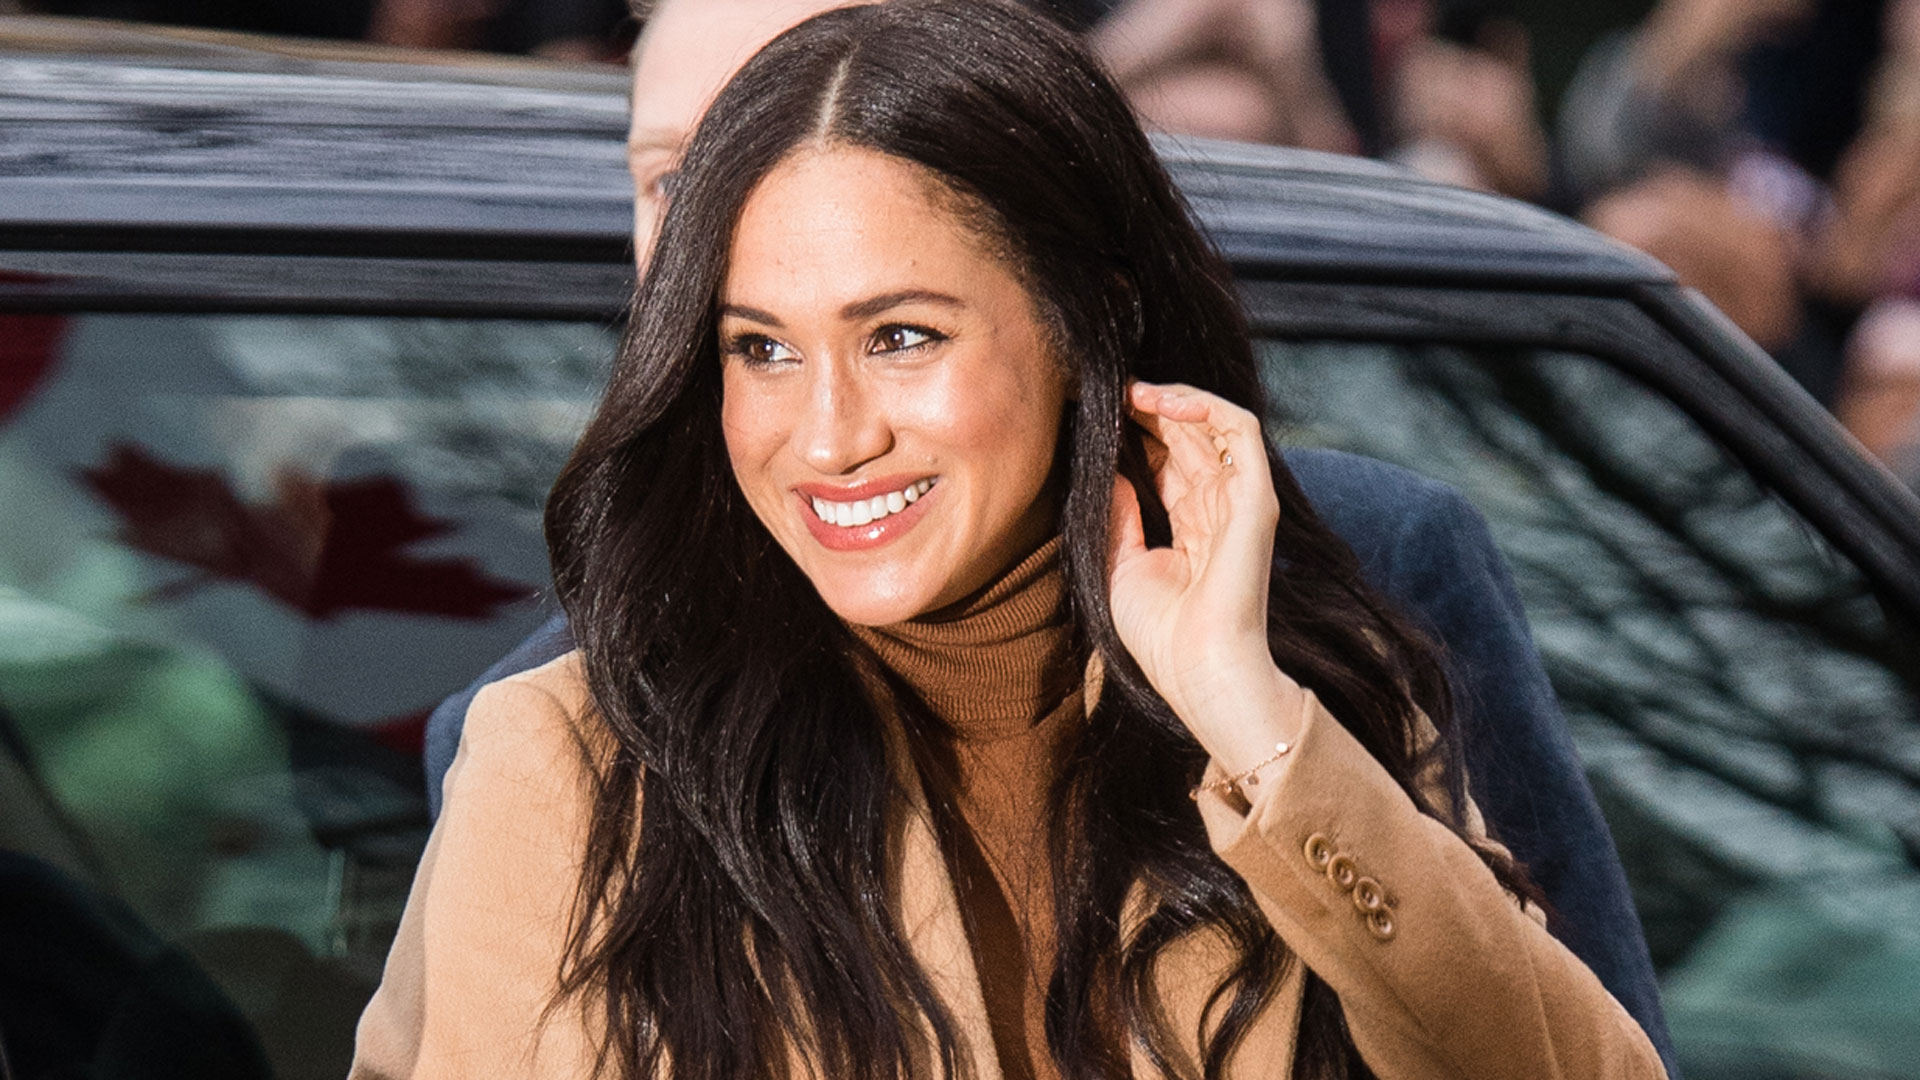 Meghan Markle Stuns In Classy Neutral Outfit As She And ...